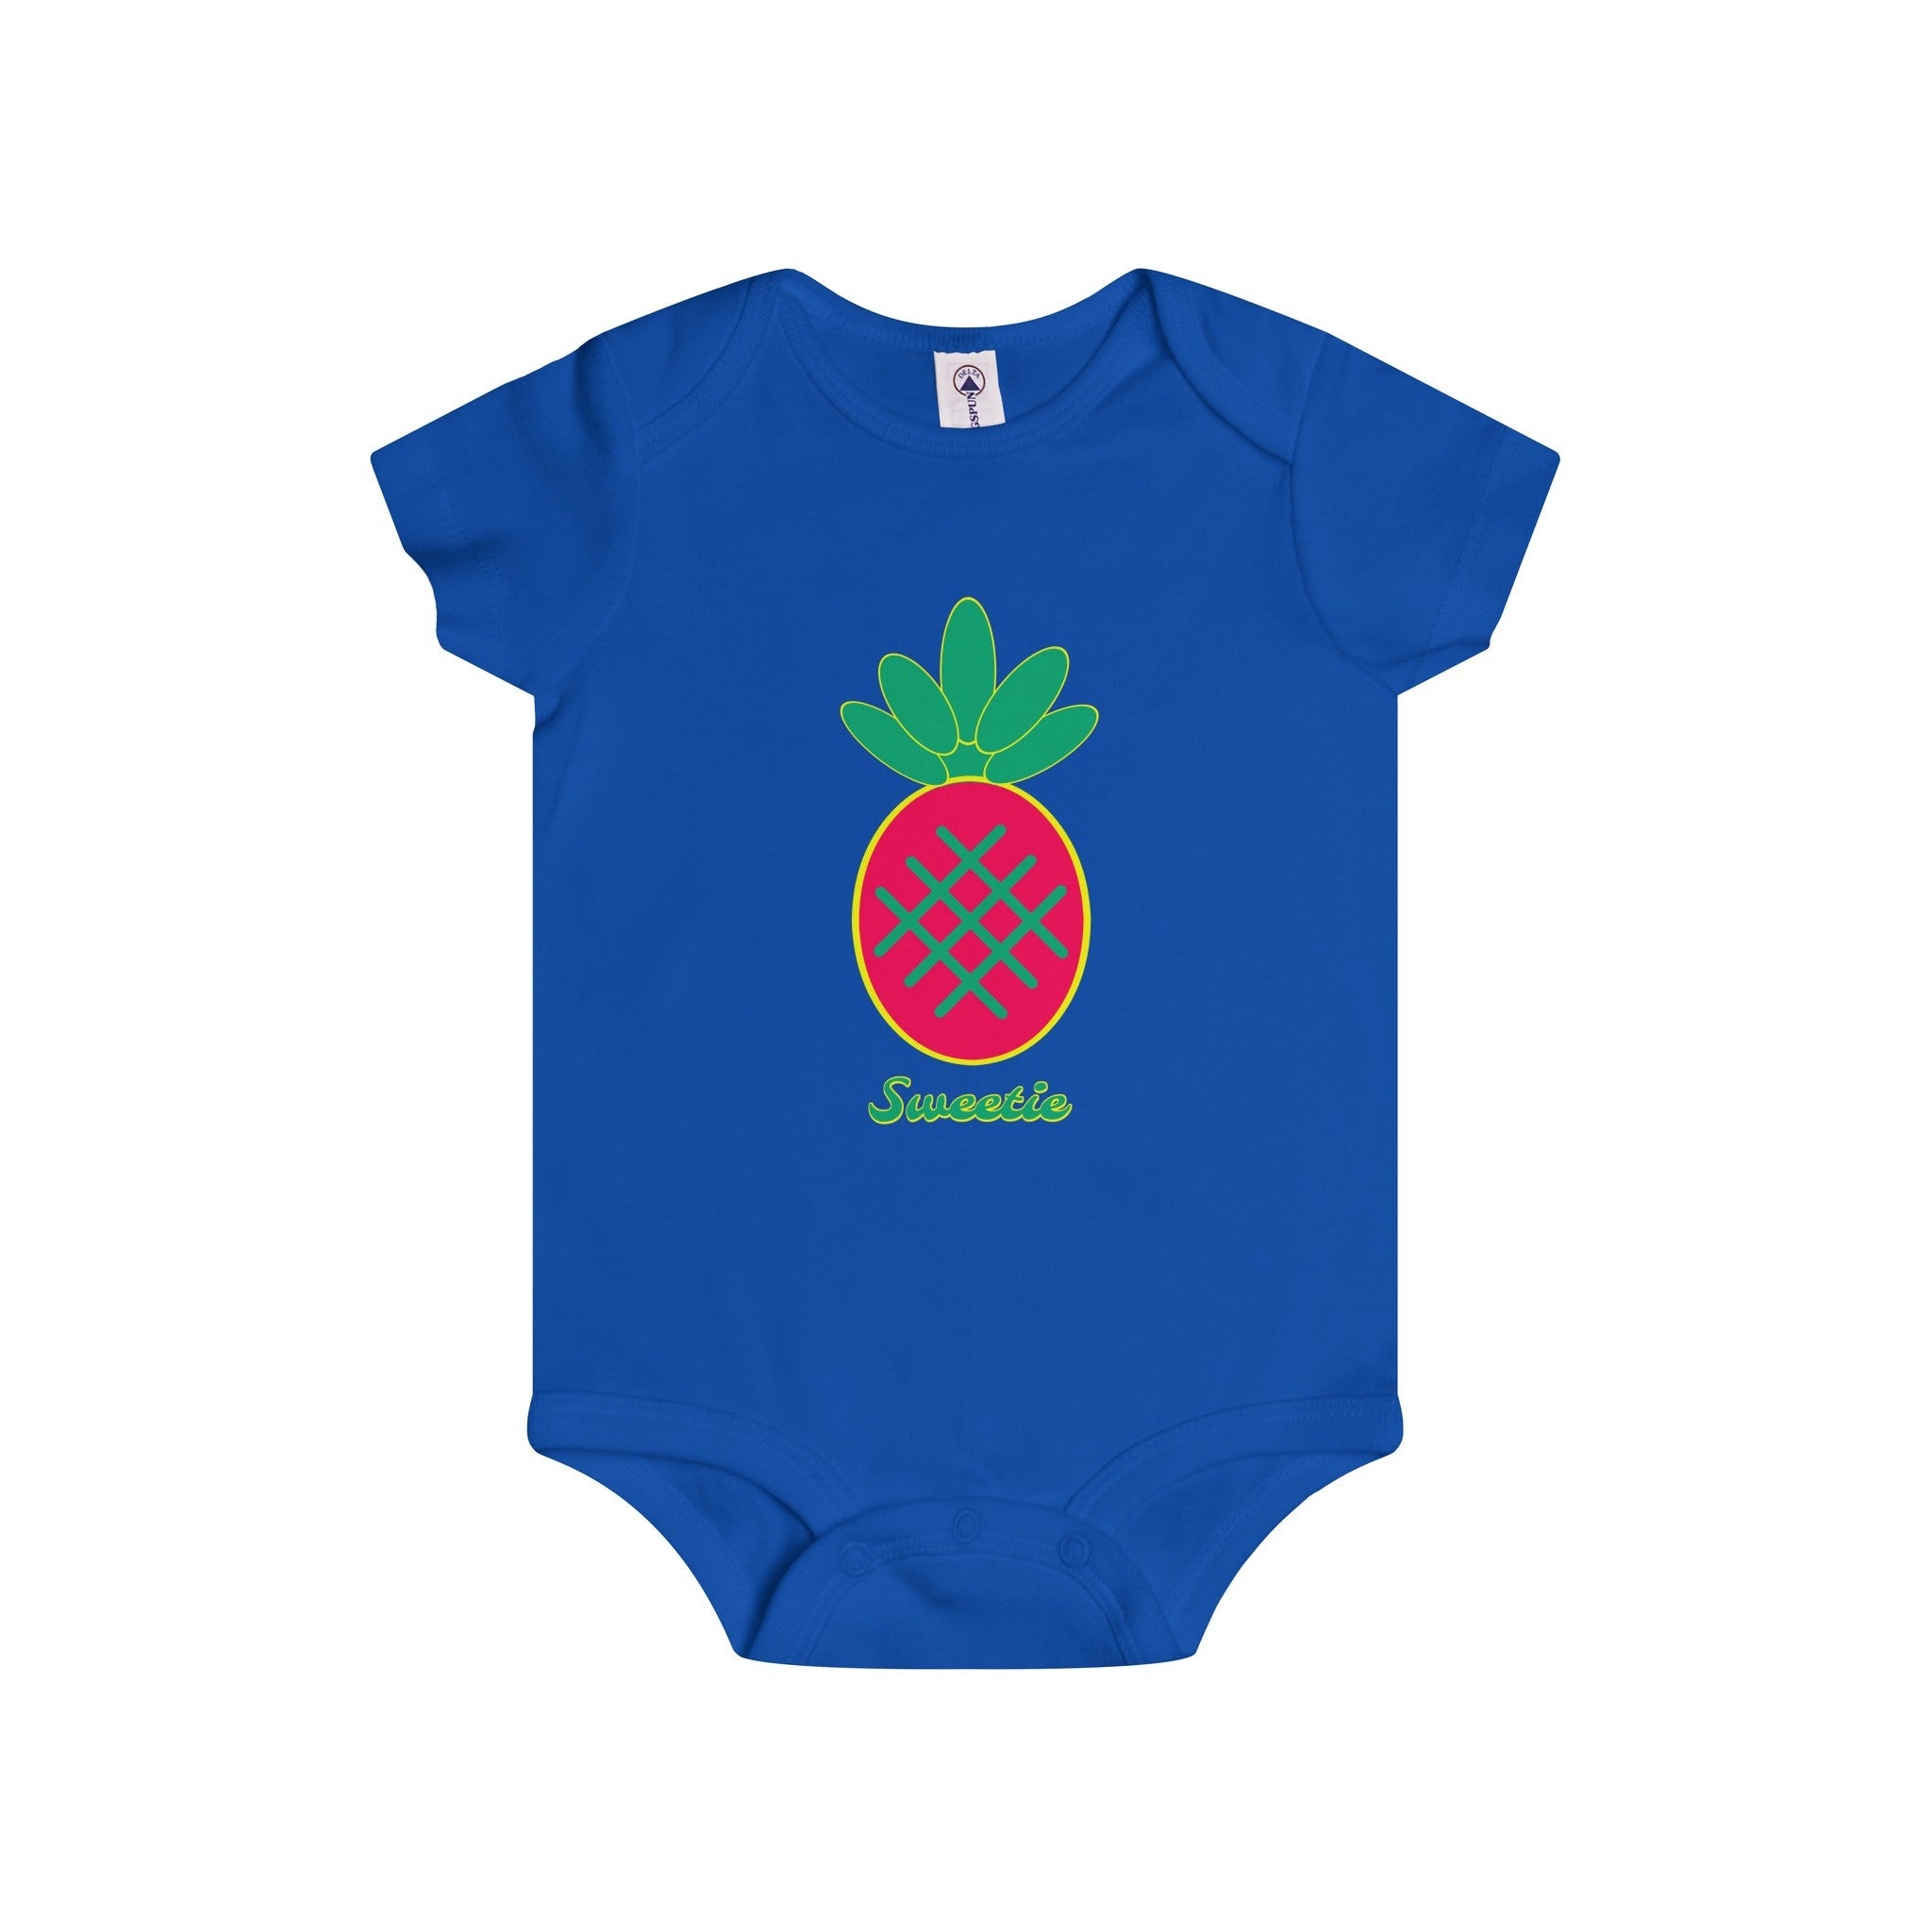 Pineapple Sweetie Onesie (6 colors available)